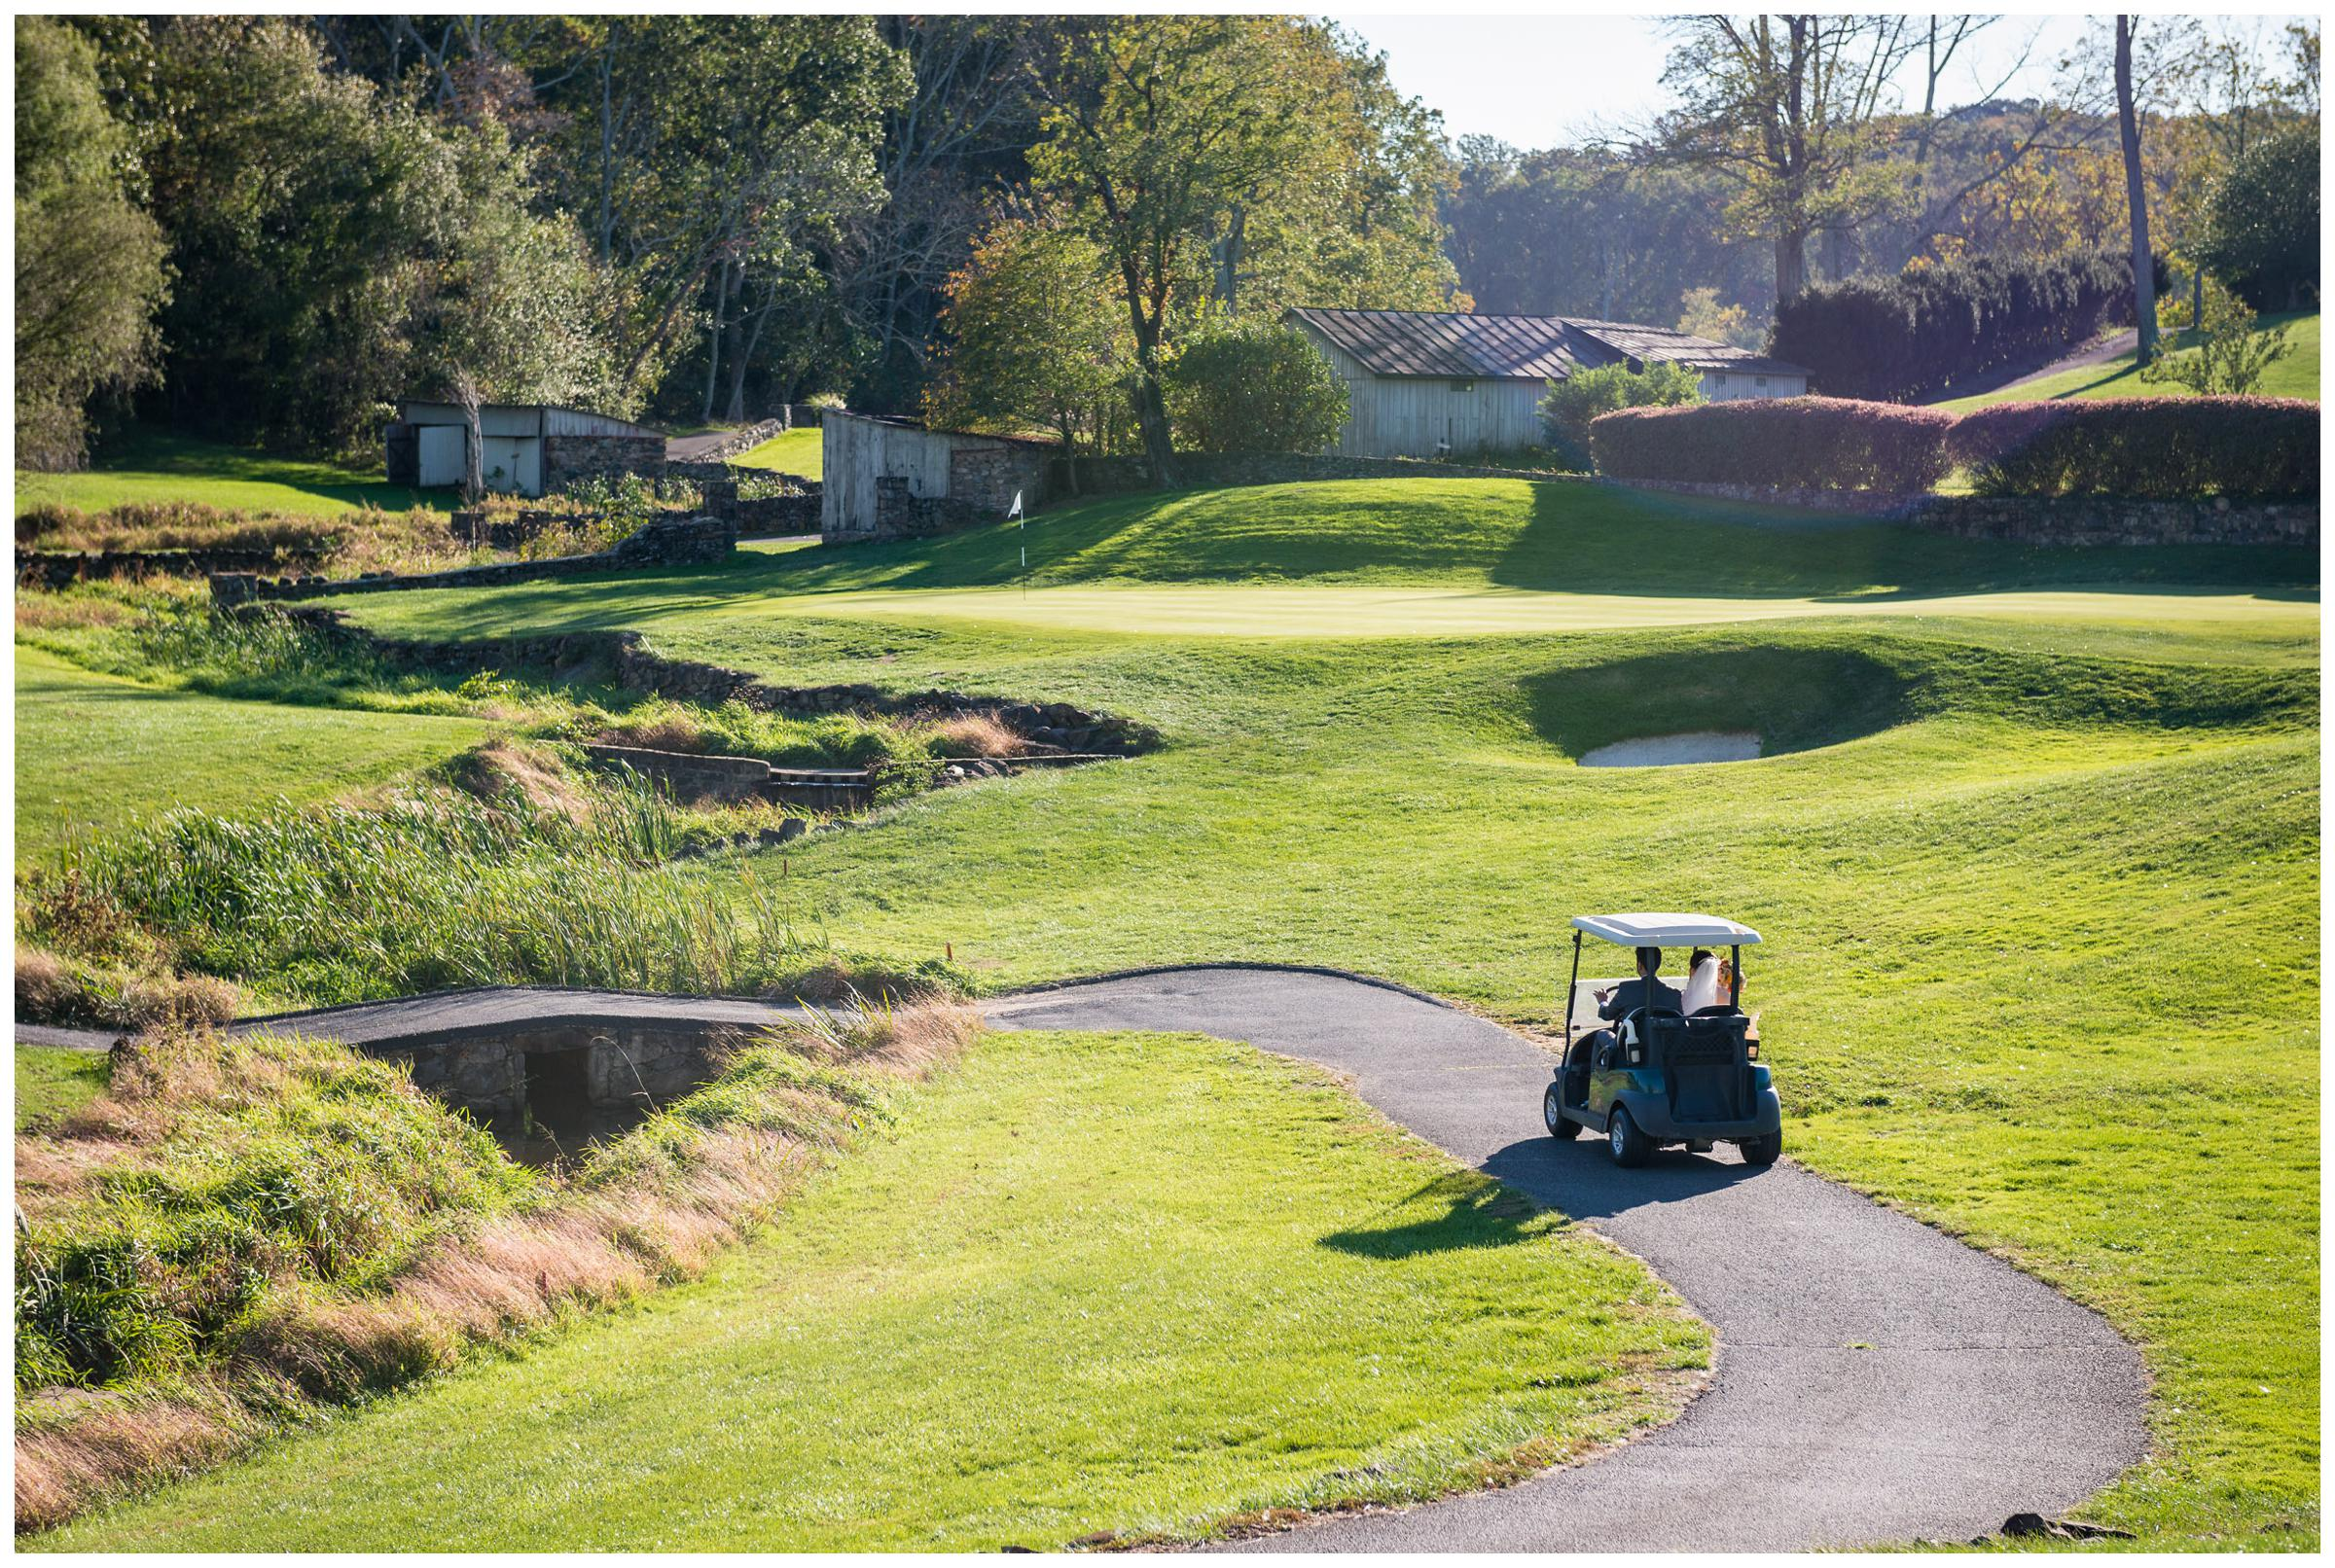 Bride and groom driving golf cart at Stoneleigh Golf Club in Virginia.